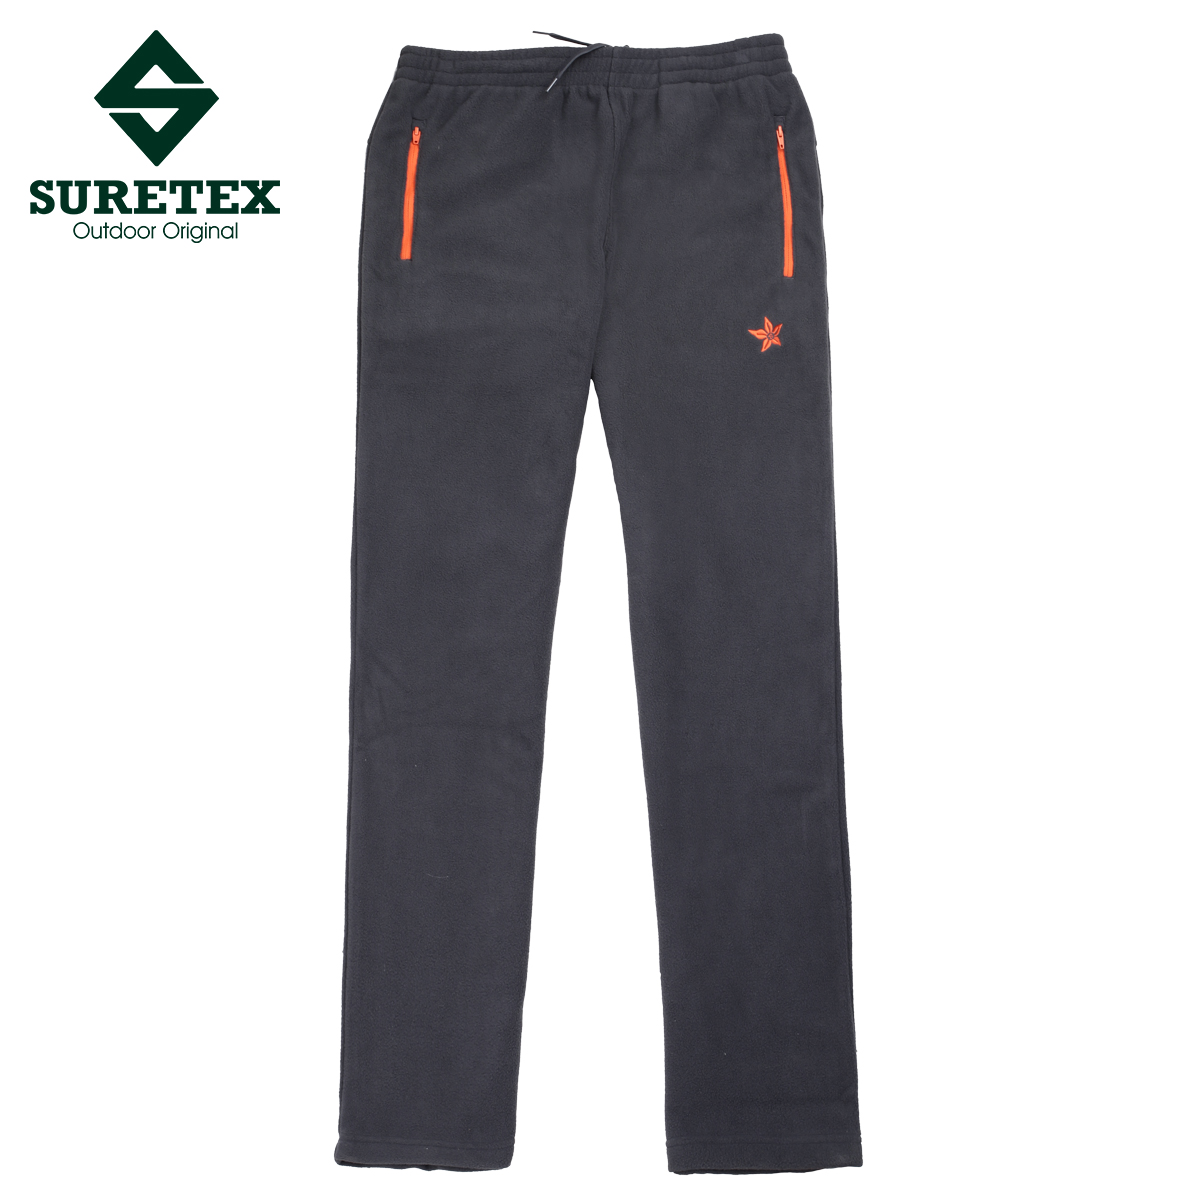 Women autumn winter thickening fleece pants black loose casual outdoor sports windproof breathable thermal - Famous brand Co. Ltd. store